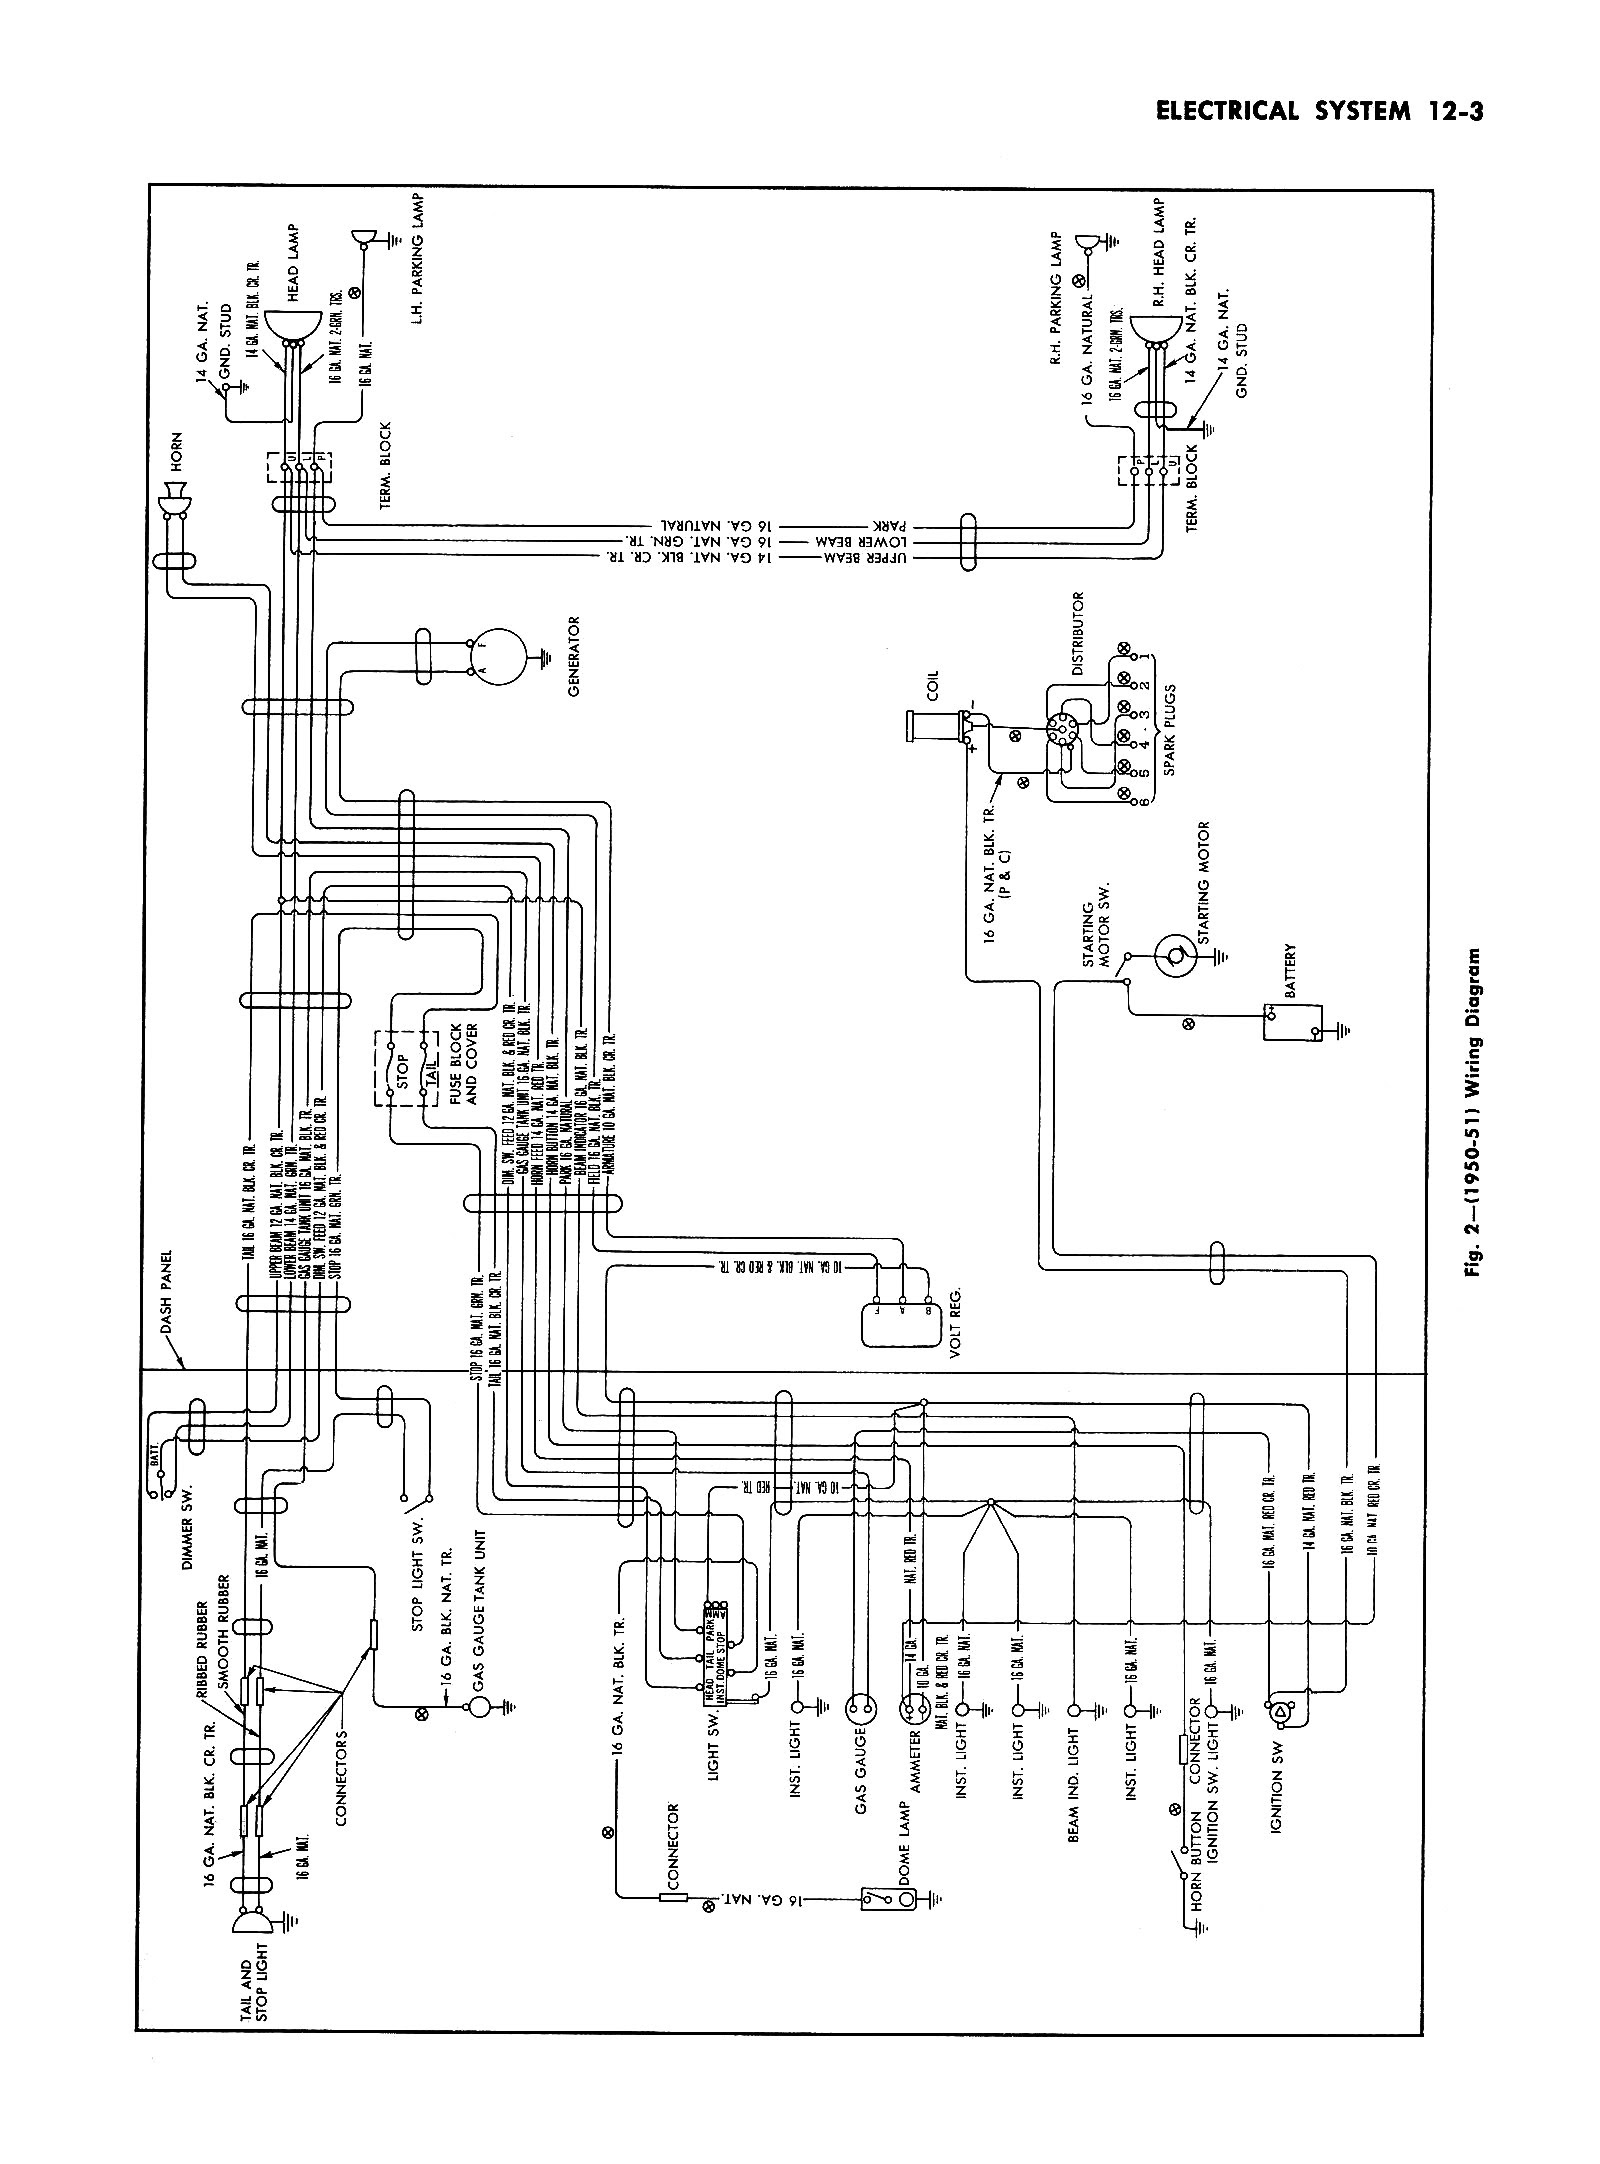 1951 Chevy Bel Air Wiring Diagram Wiring Diagram Regulator Regulator Graniantichiumbri It